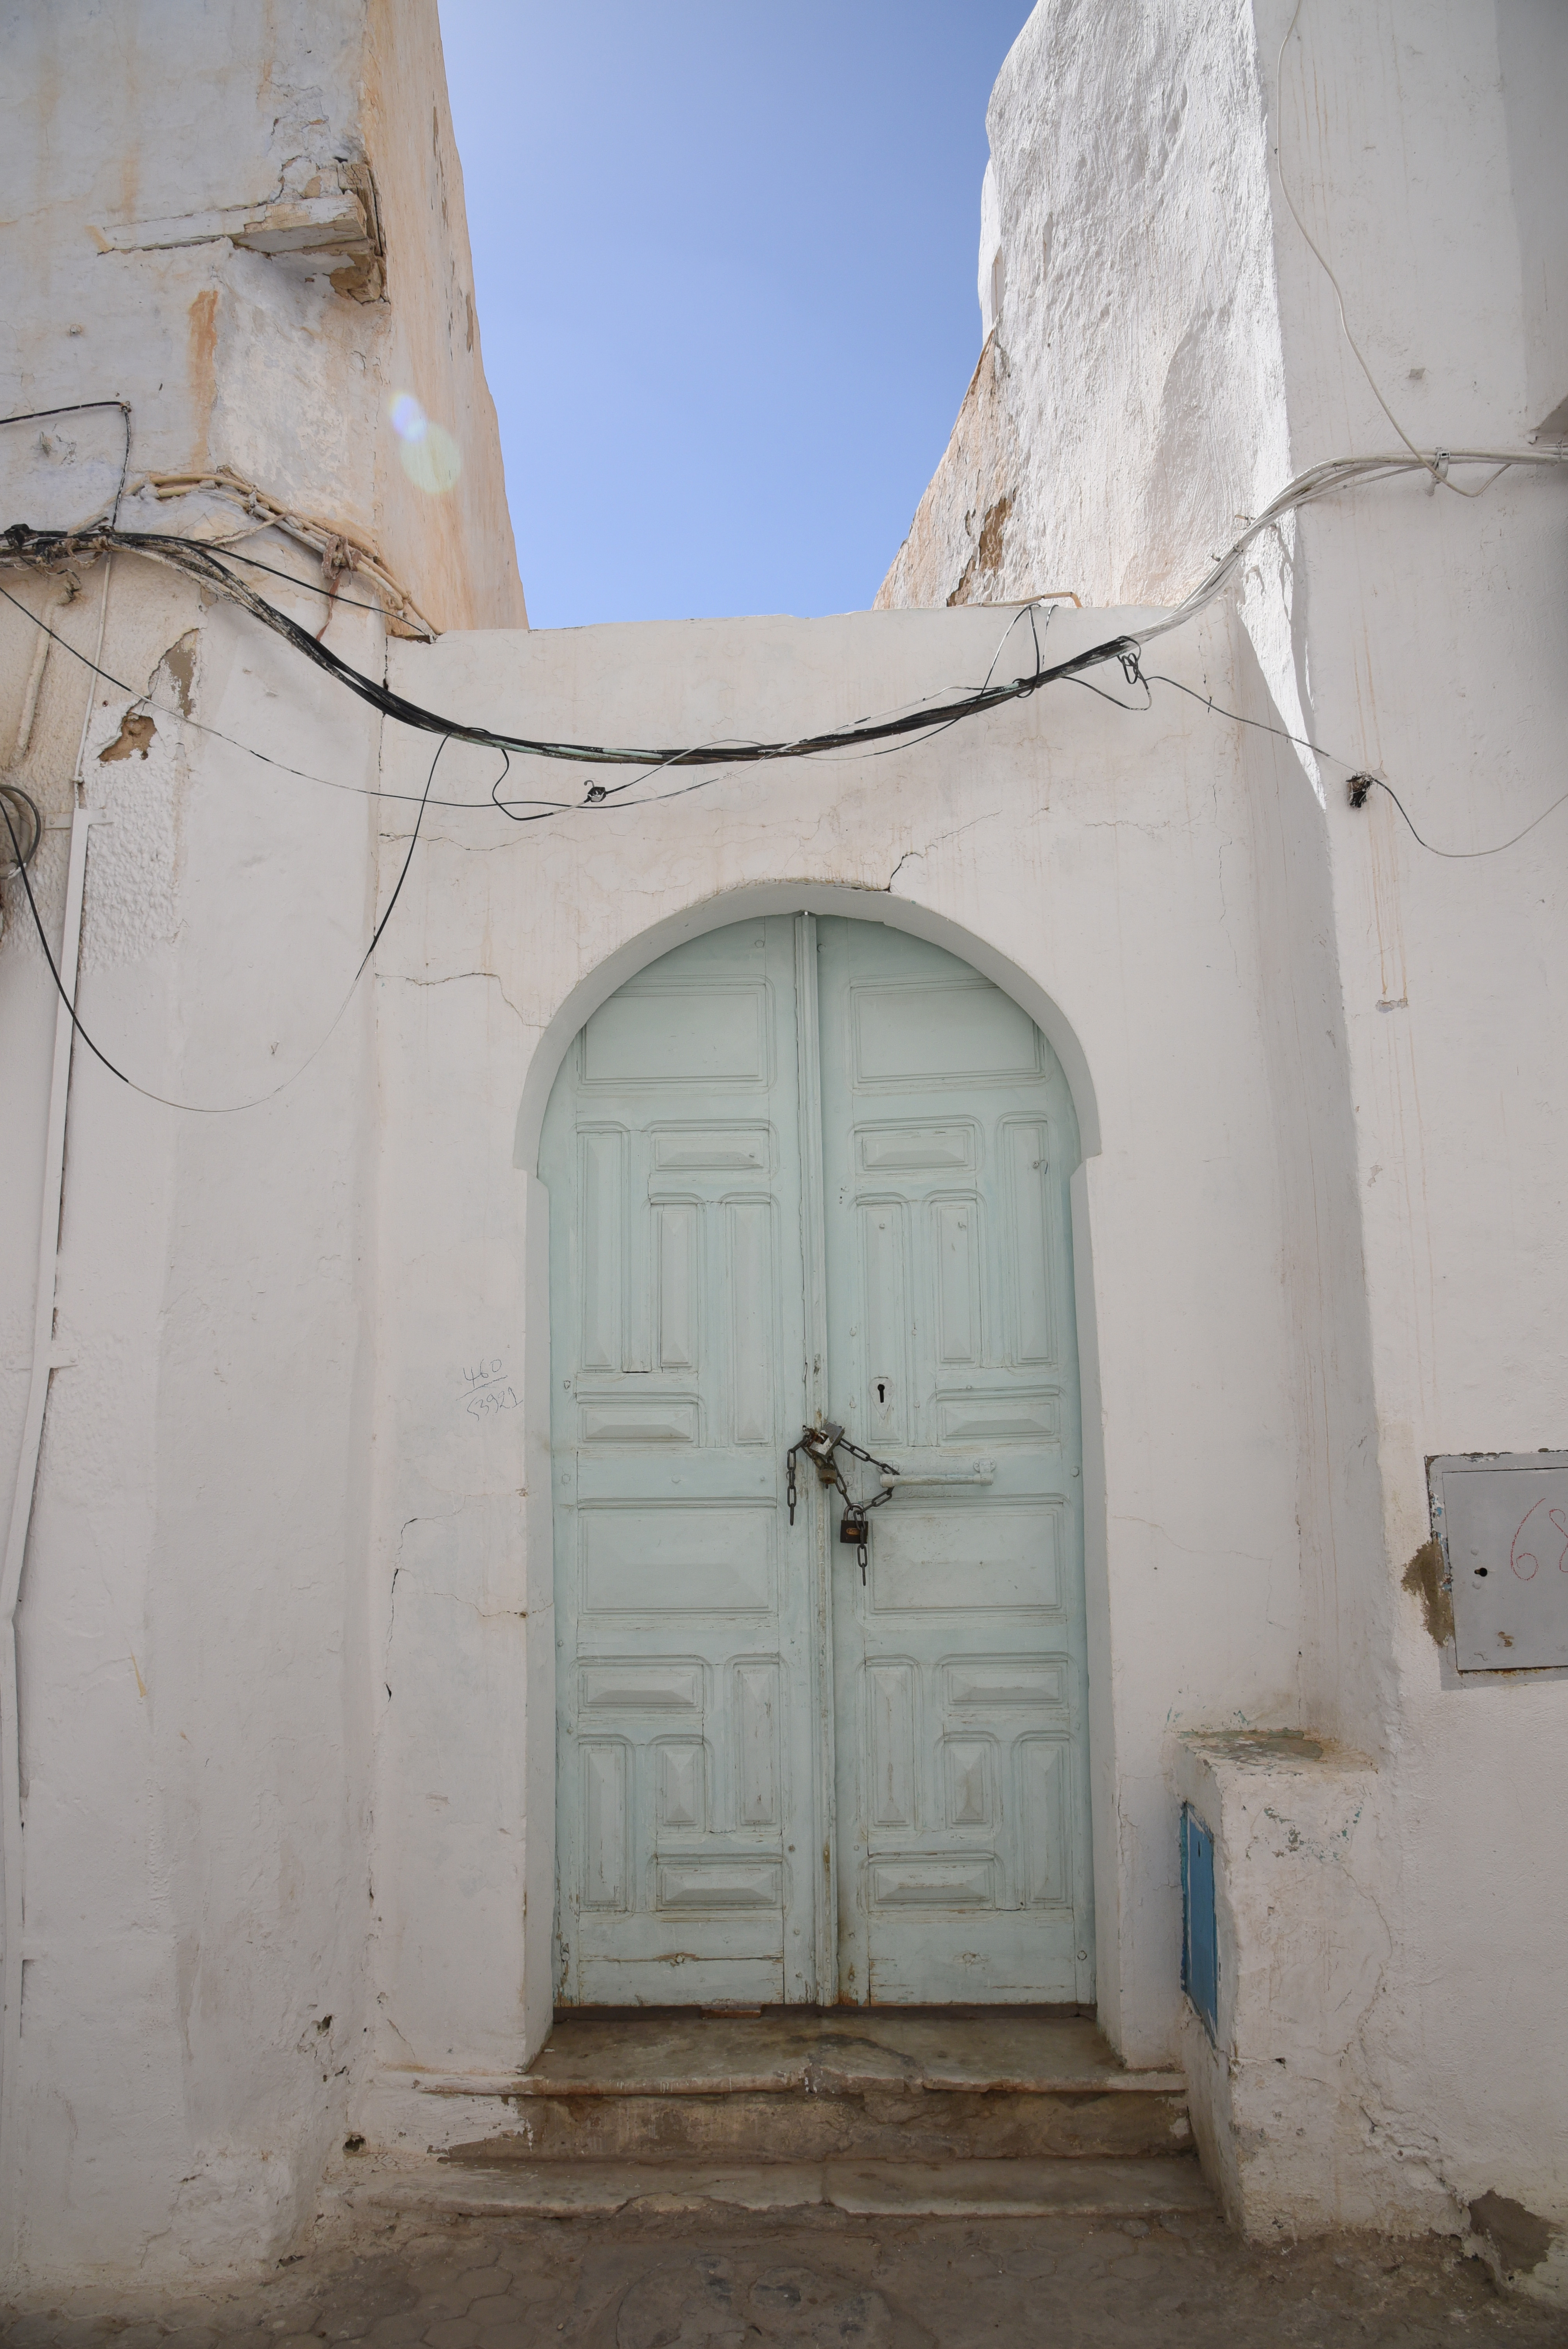 Synagogue, Kairouan, Tunisia